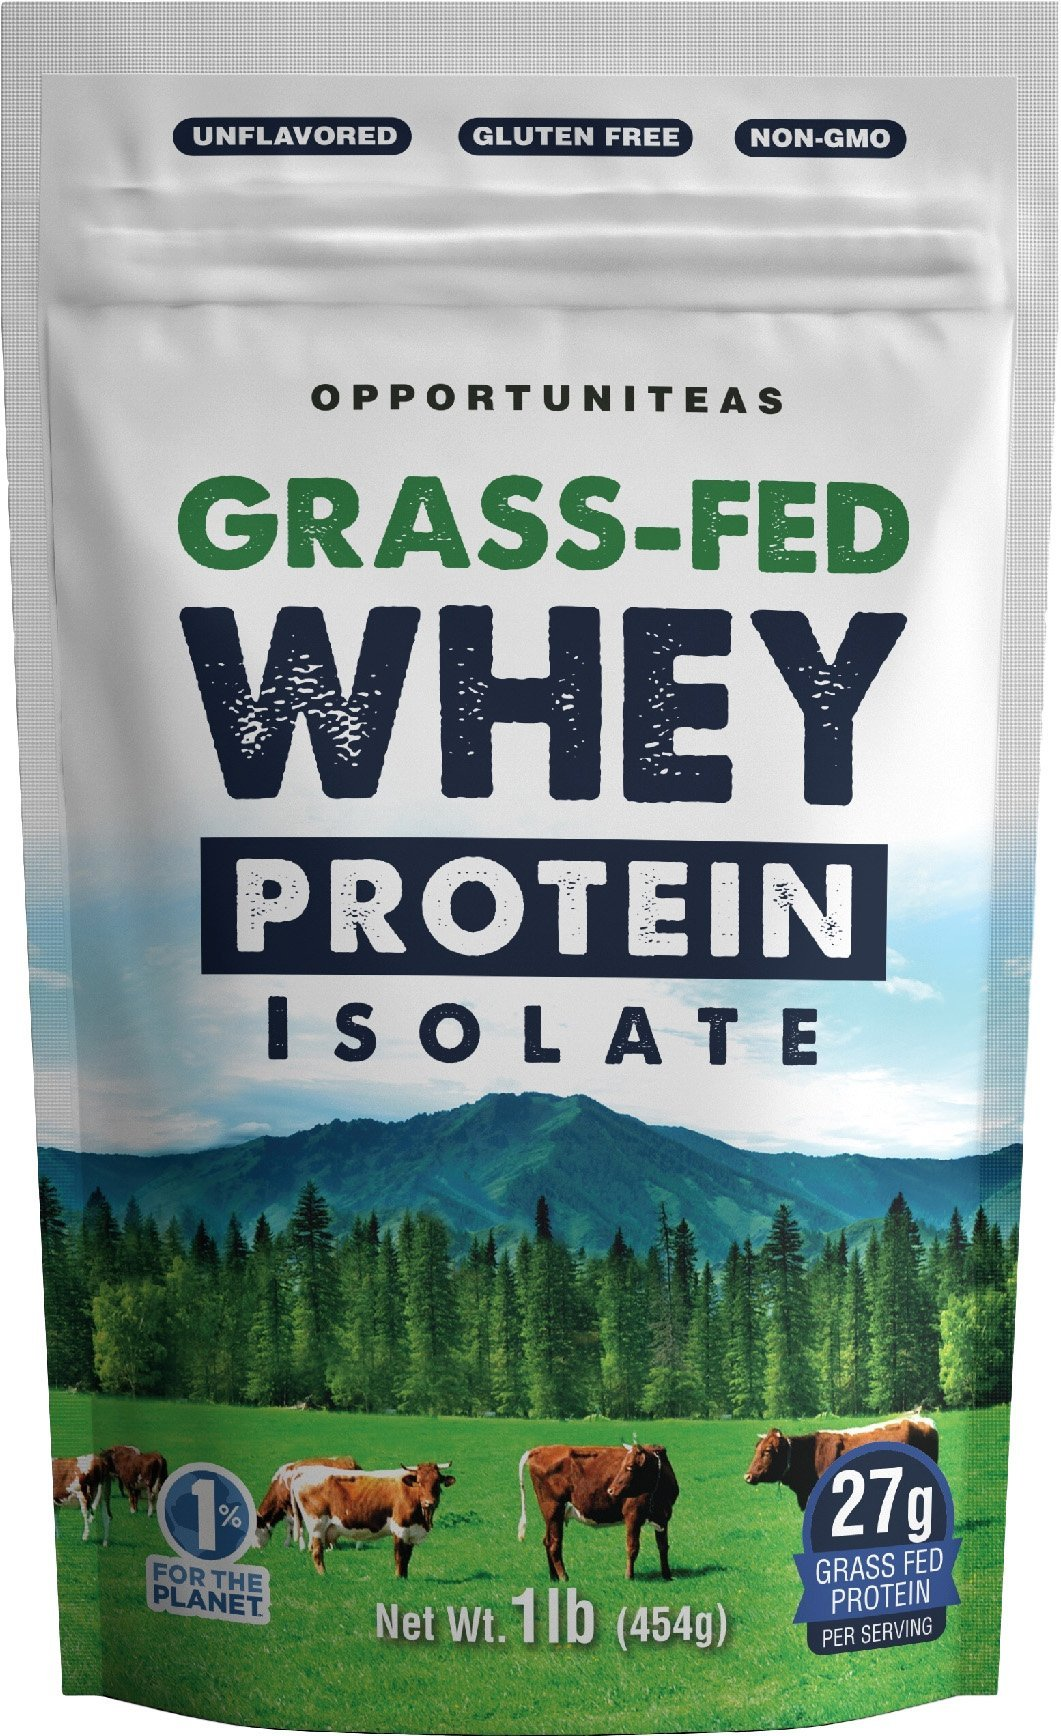 Grass Fed Whey Protein Powder Isolate - Unflavored + Cold Processed + Undenatured - Pure Wisconsin Grass-Fed Protein for Shake, Smoothie, Drink, or Food - Natural + Non GMO + No Gluten - 1 Pound by Opportuniteas